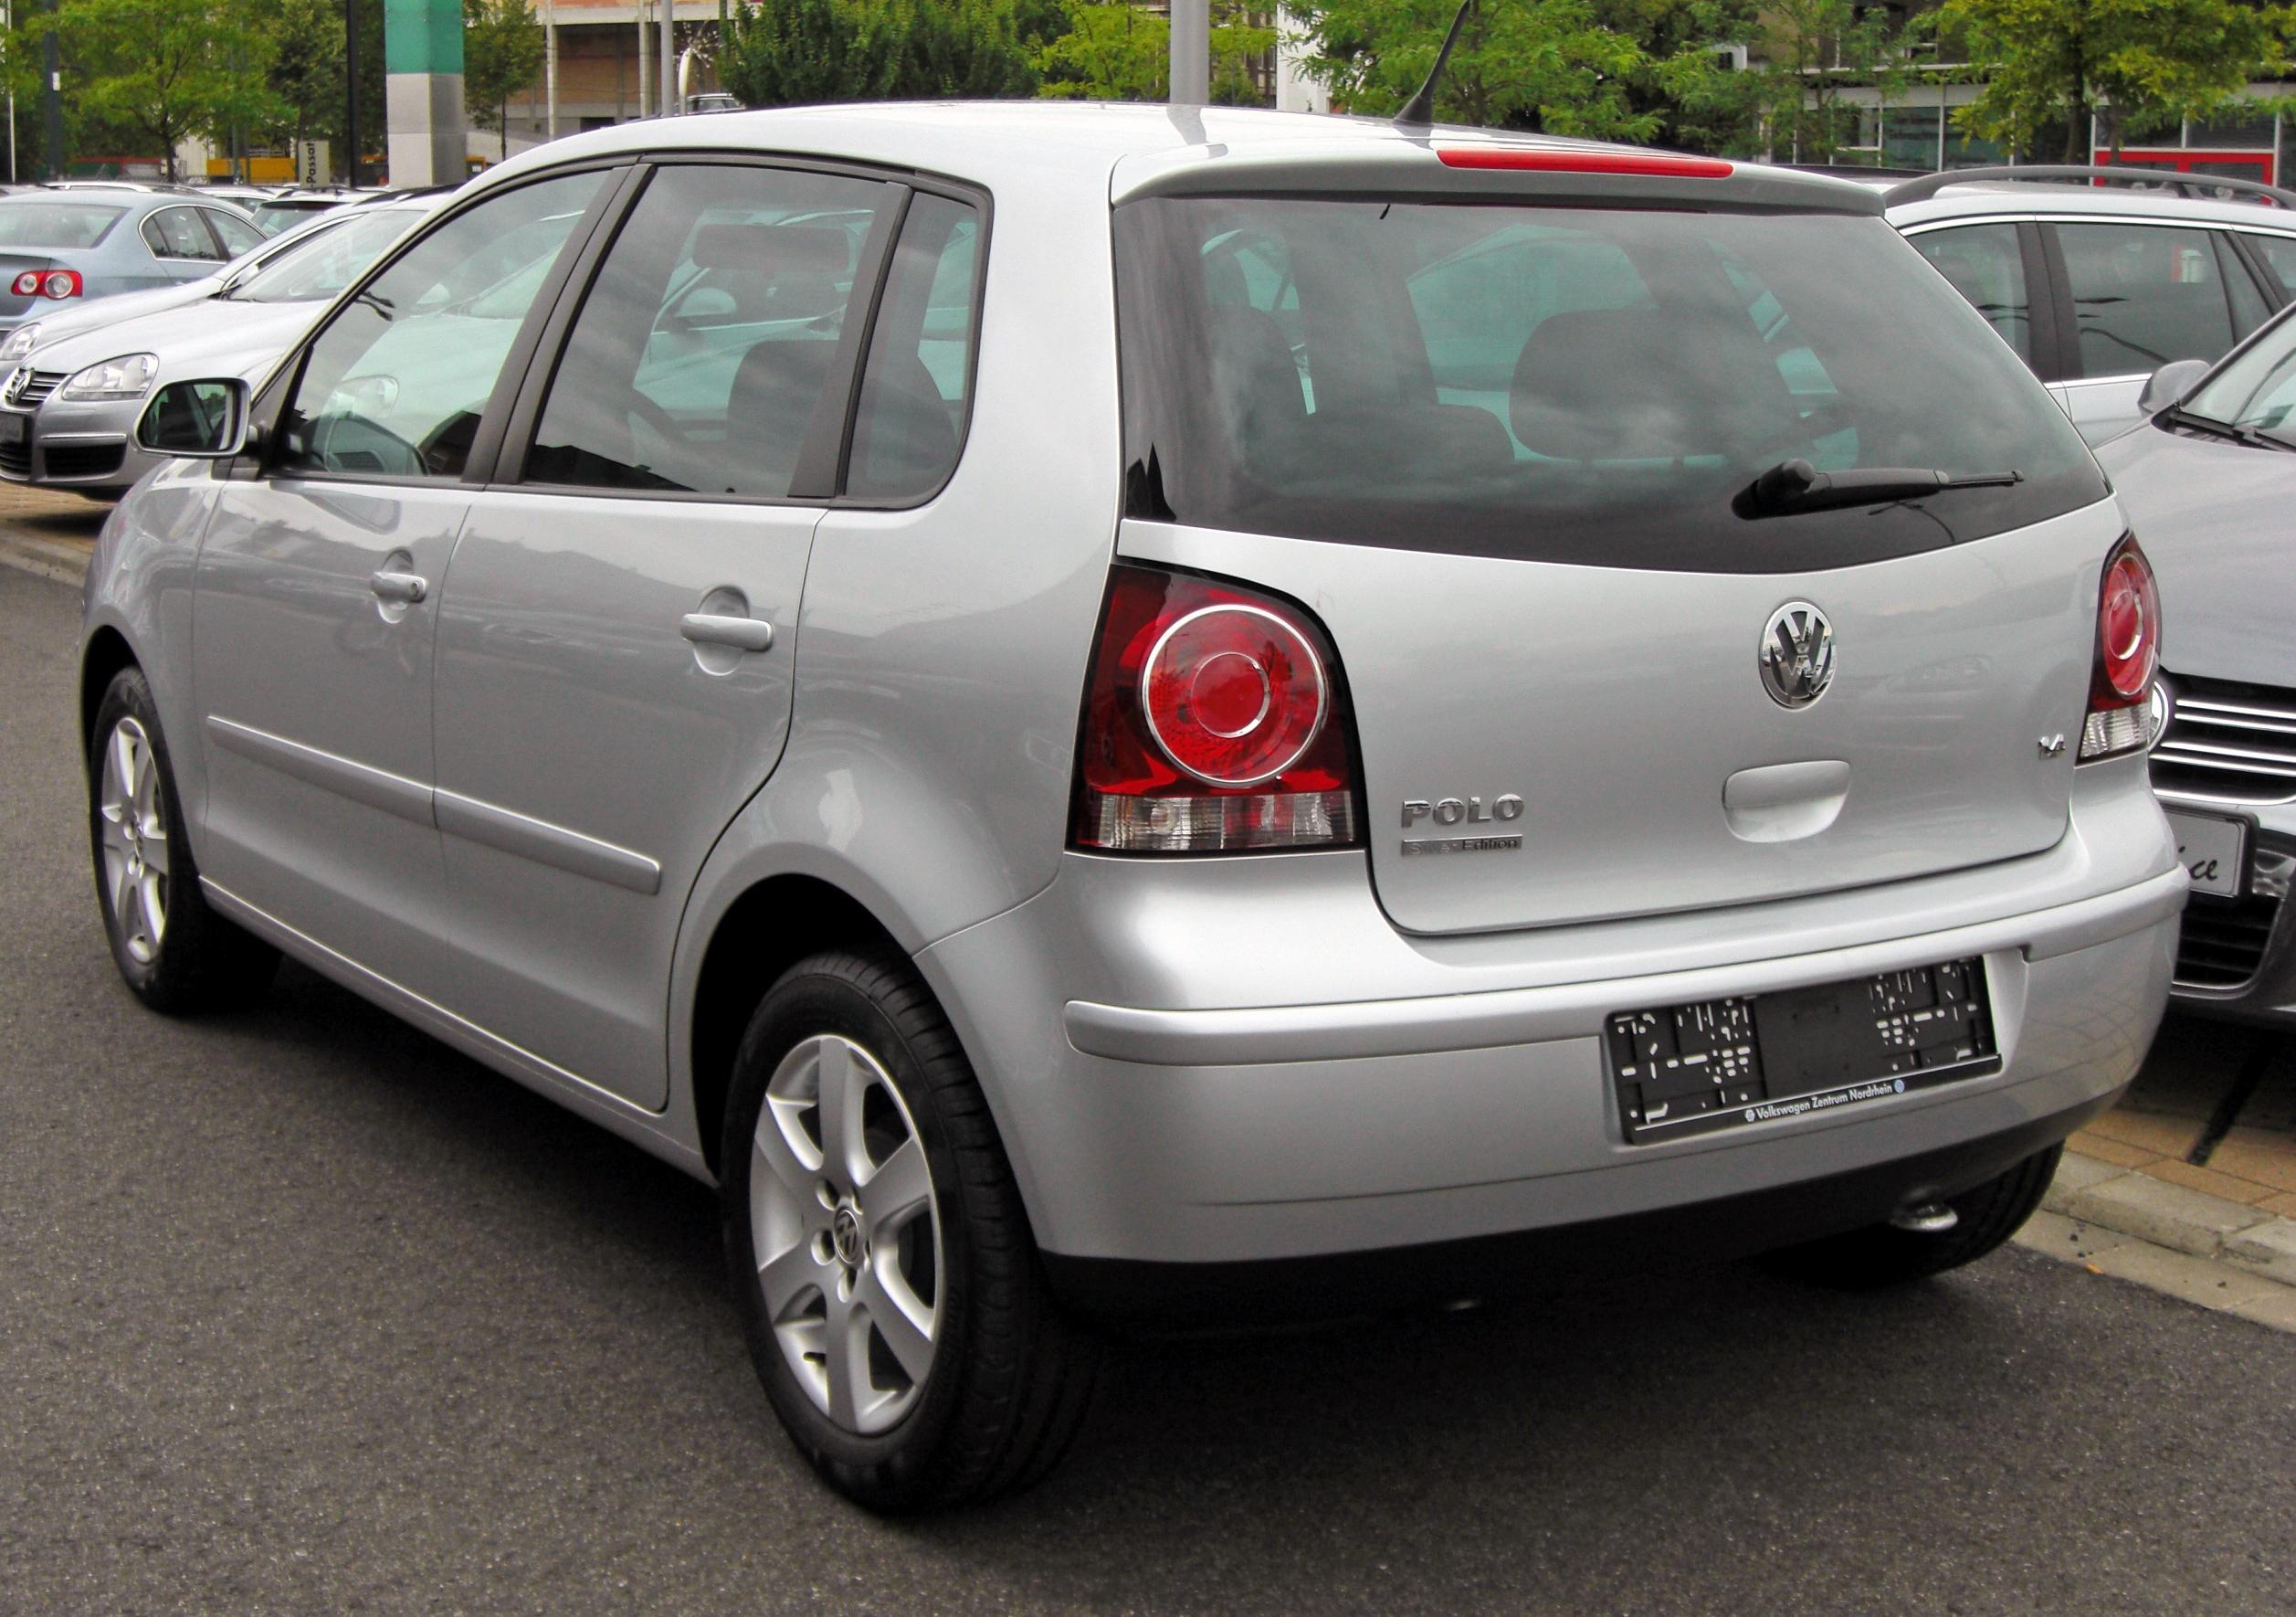 file vw polo iv facelift silver edition 20090620 rear jpg wikimedia commons. Black Bedroom Furniture Sets. Home Design Ideas